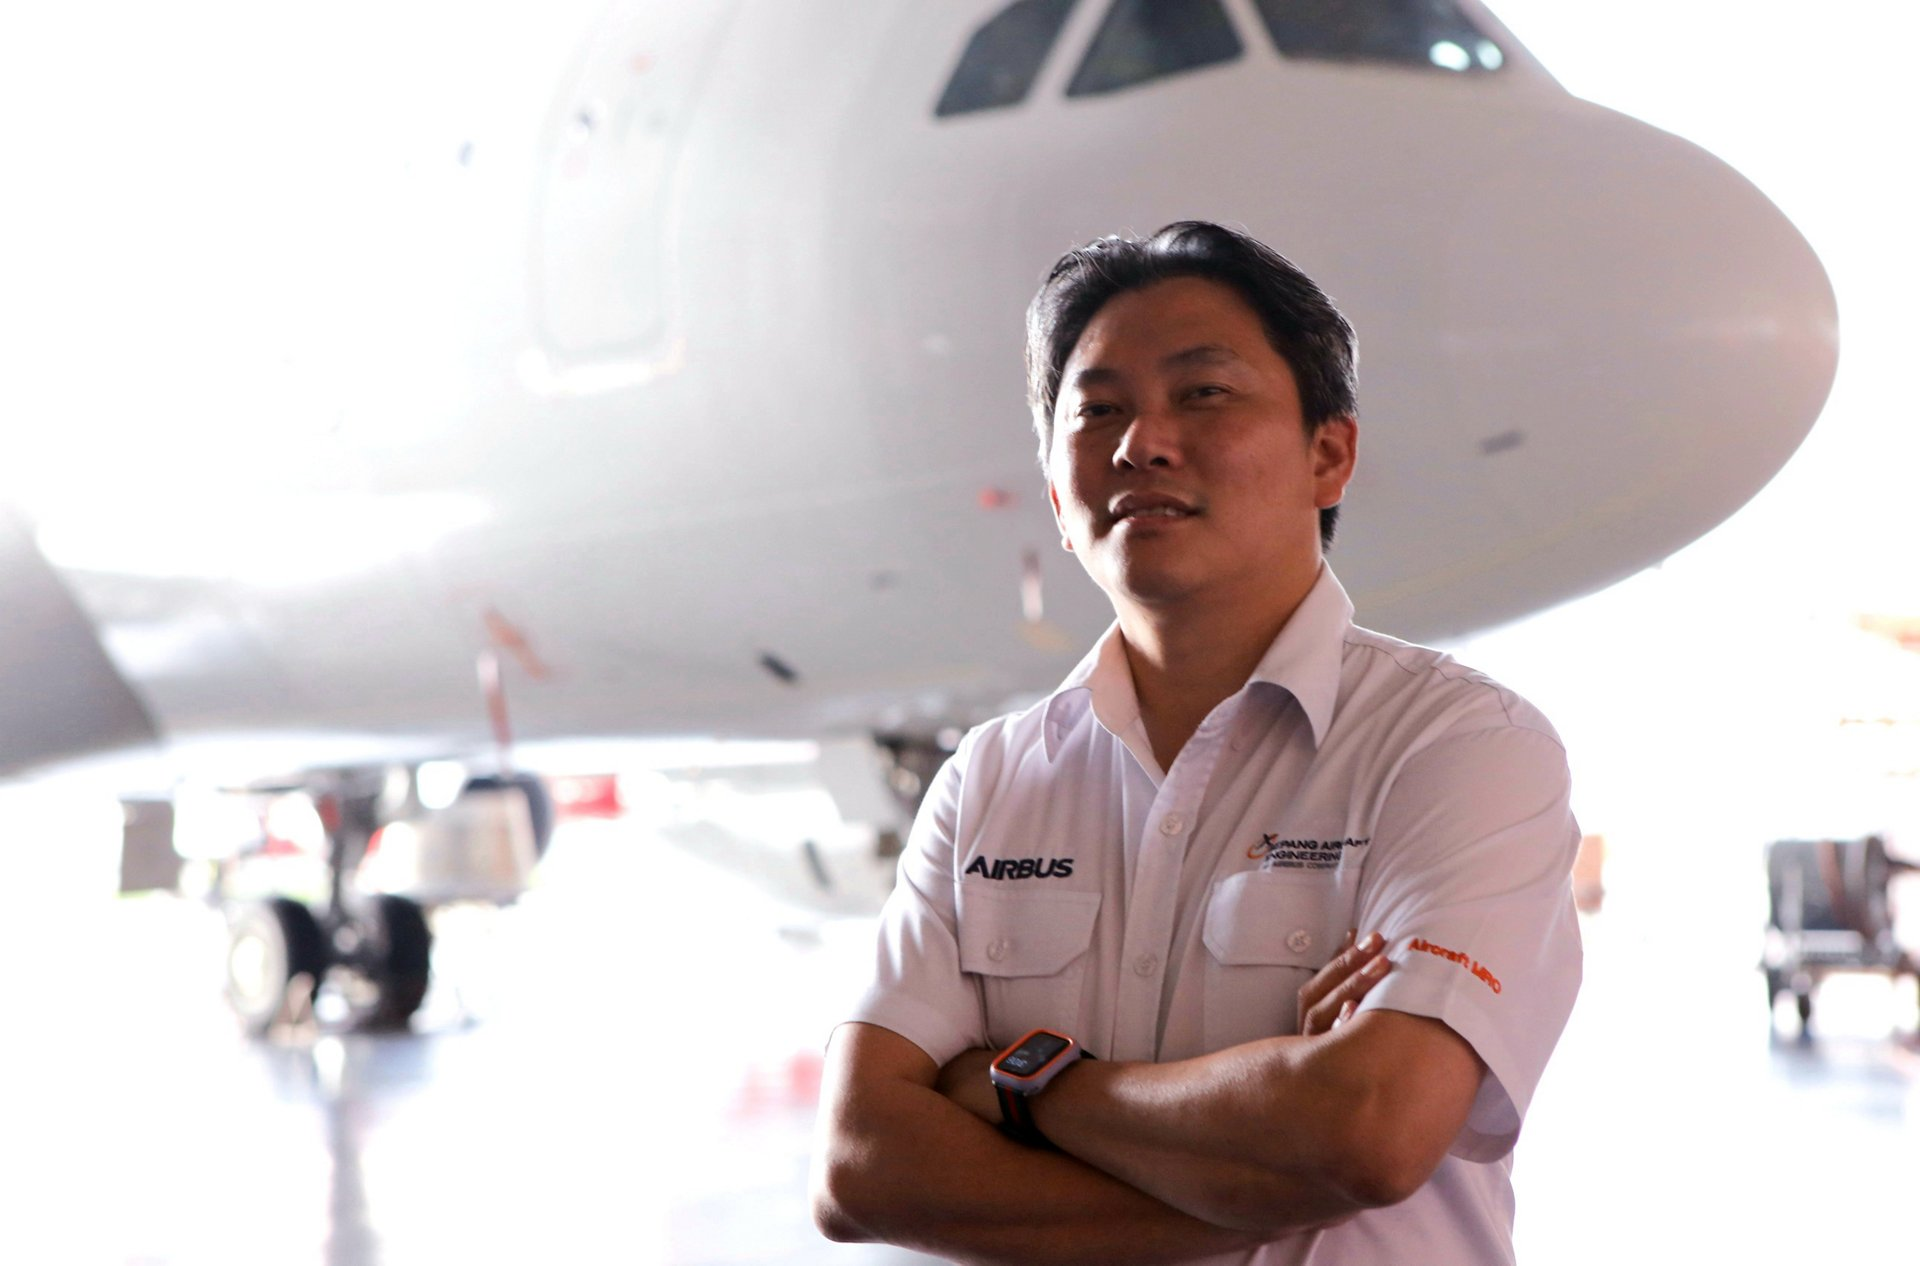 Hassan is working a Senior Manager Workshop Operations at Airbus Malaysia